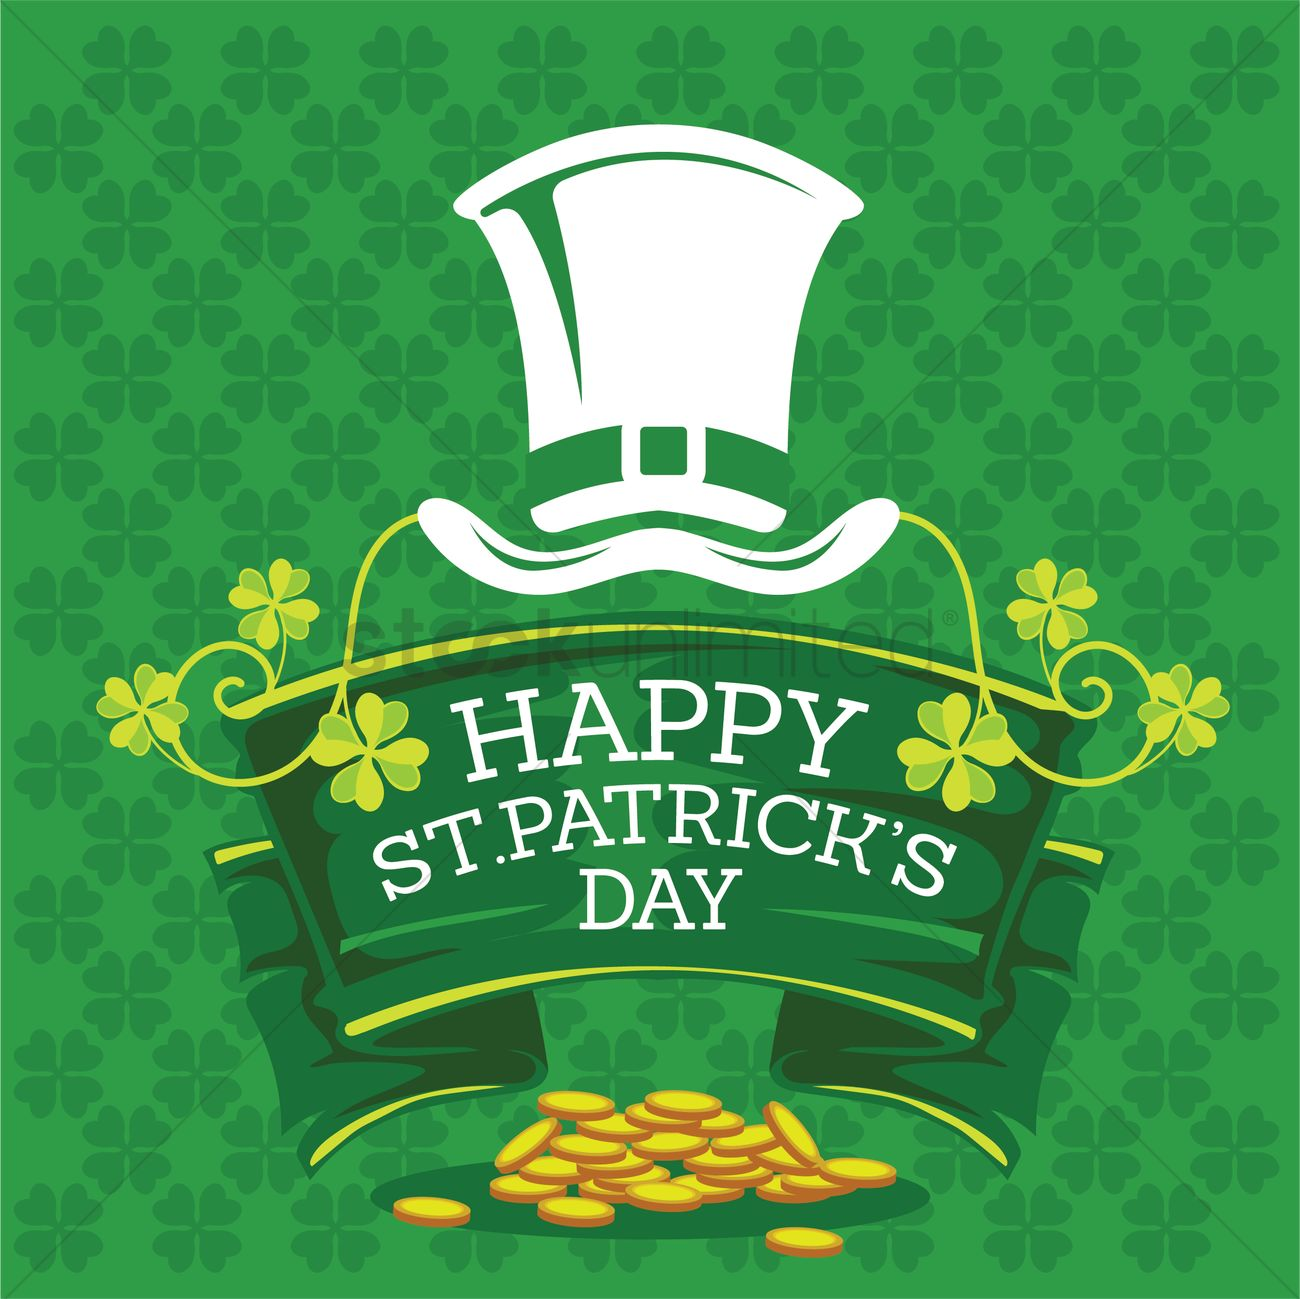 Happy st patricks day Vector Image - 1991594 | StockUnlimited